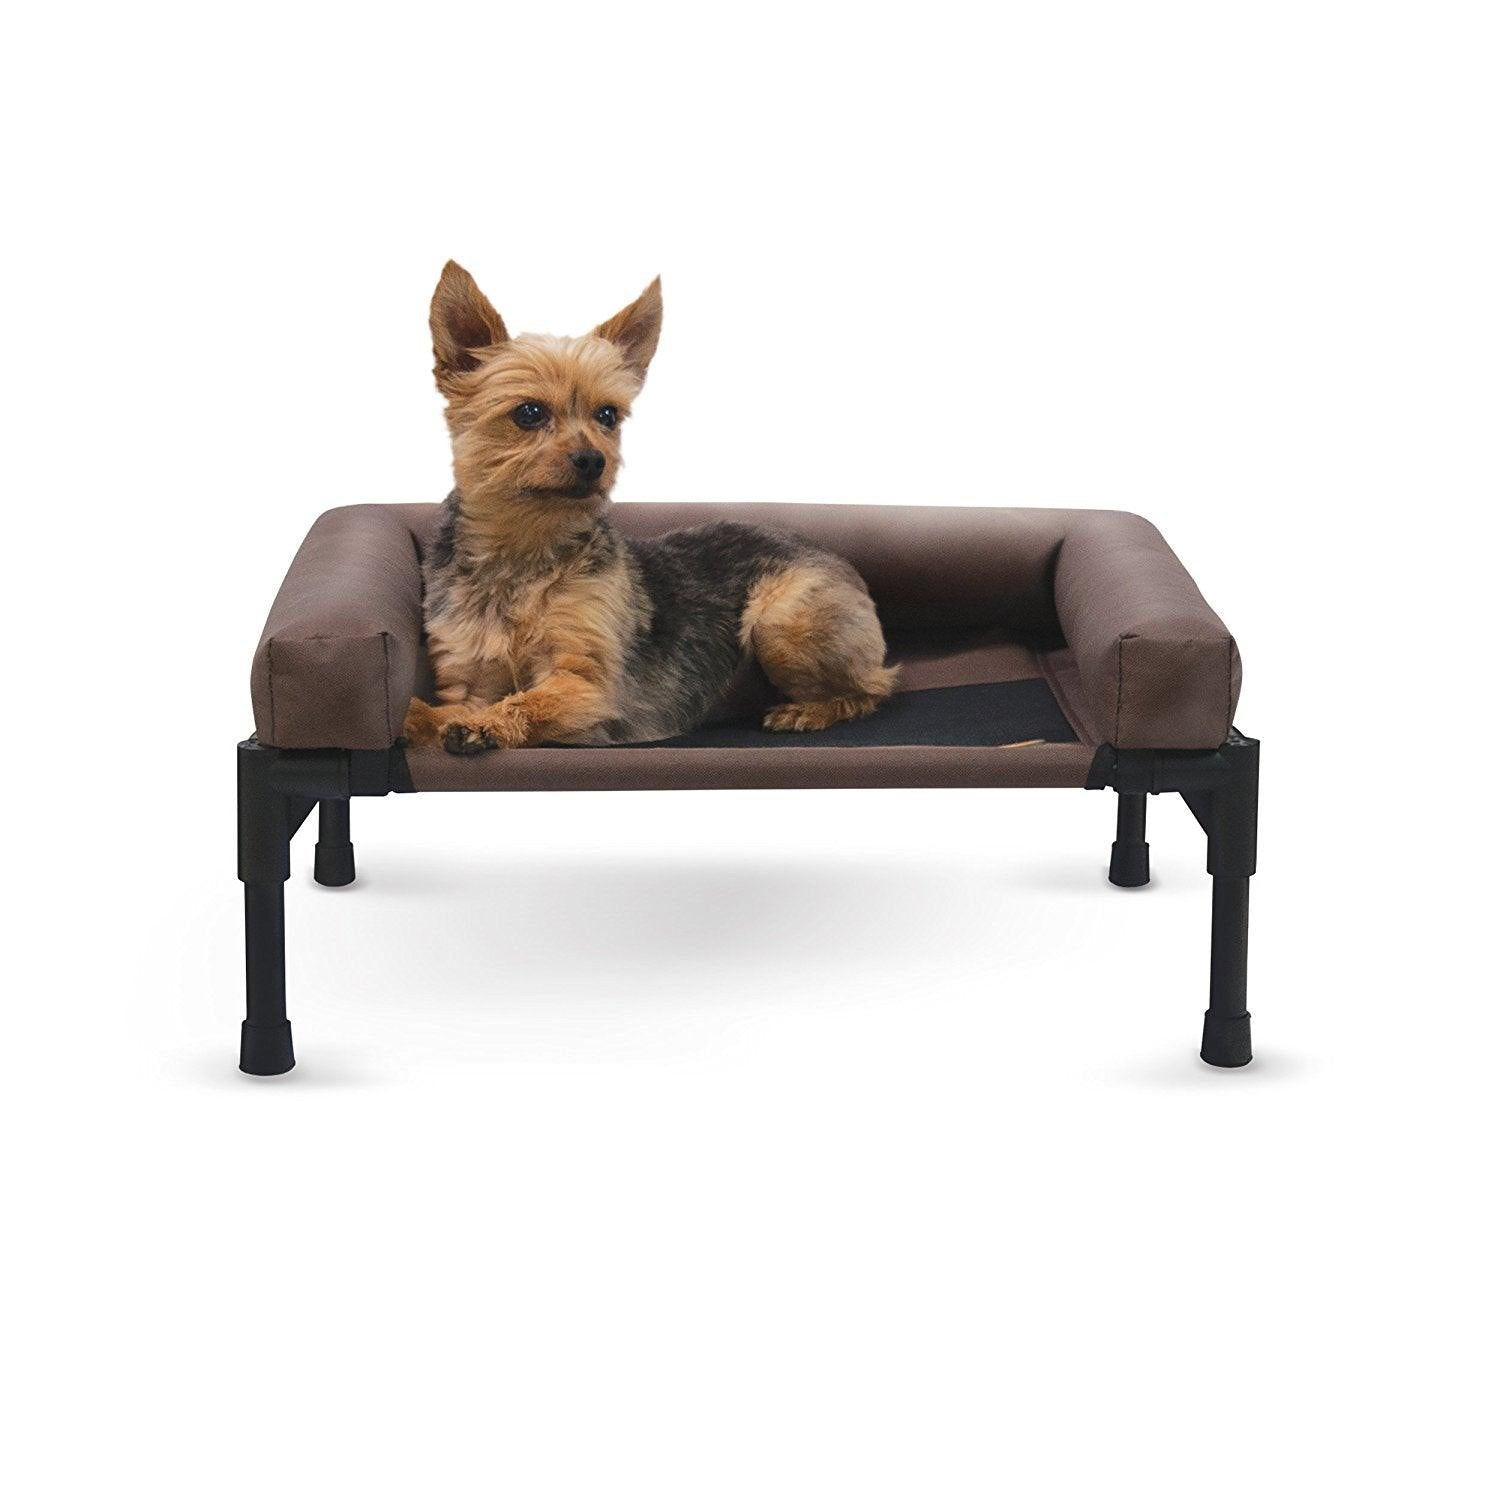 Elevated Dog Bed with Bolster for Luvnpupz Rescue